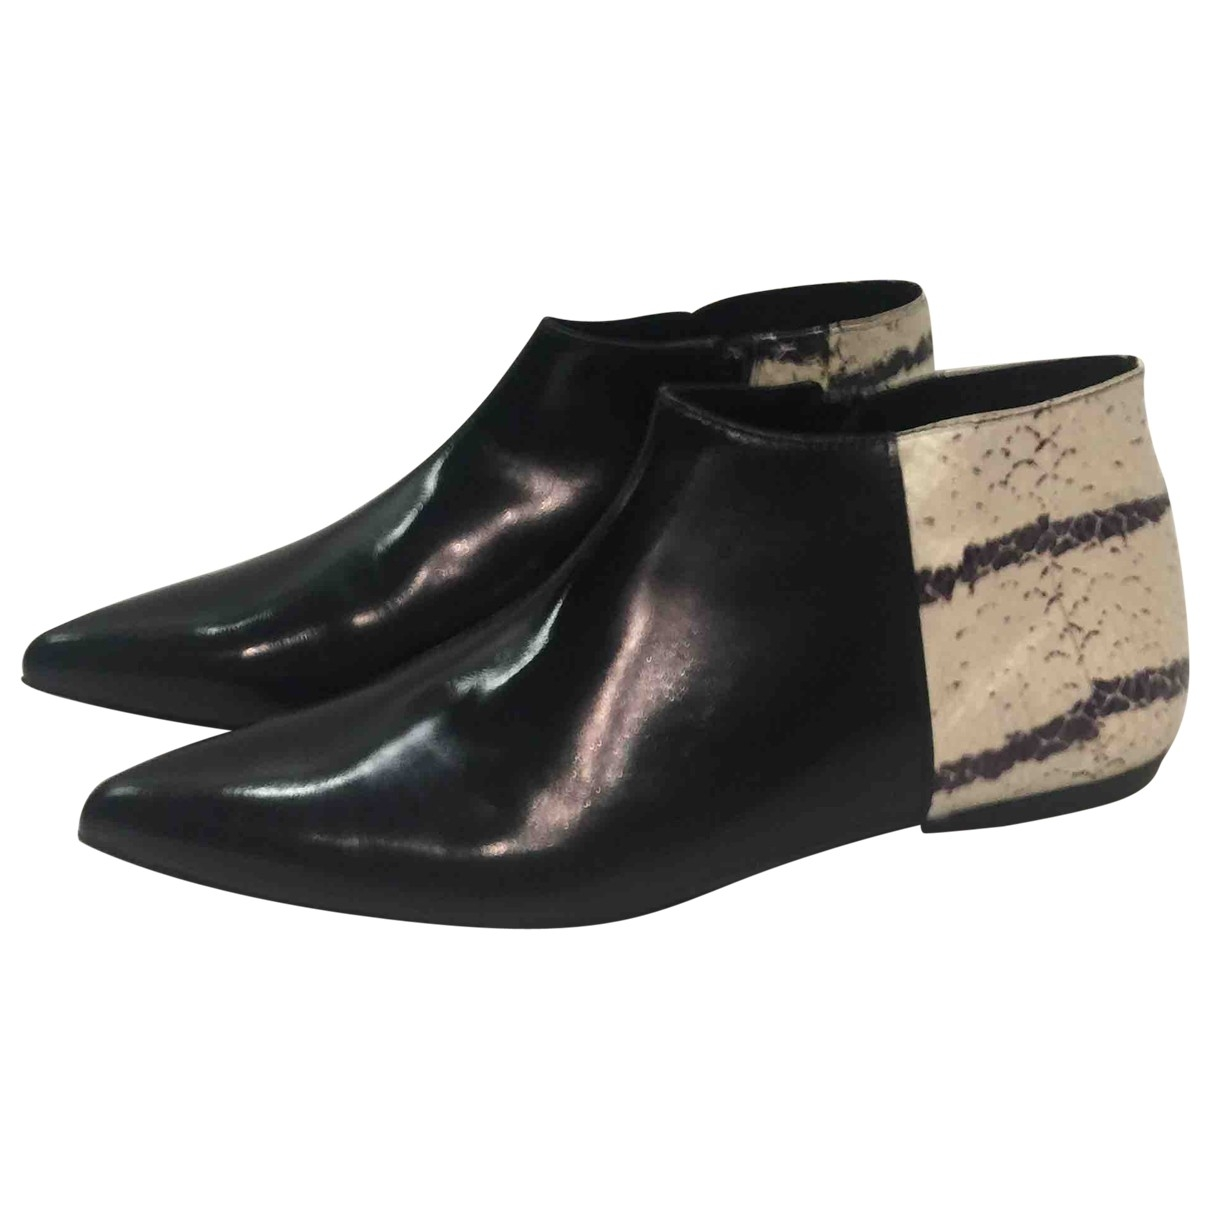 Pierre Hardy \N Black Leather Ankle boots for Women 38 EU